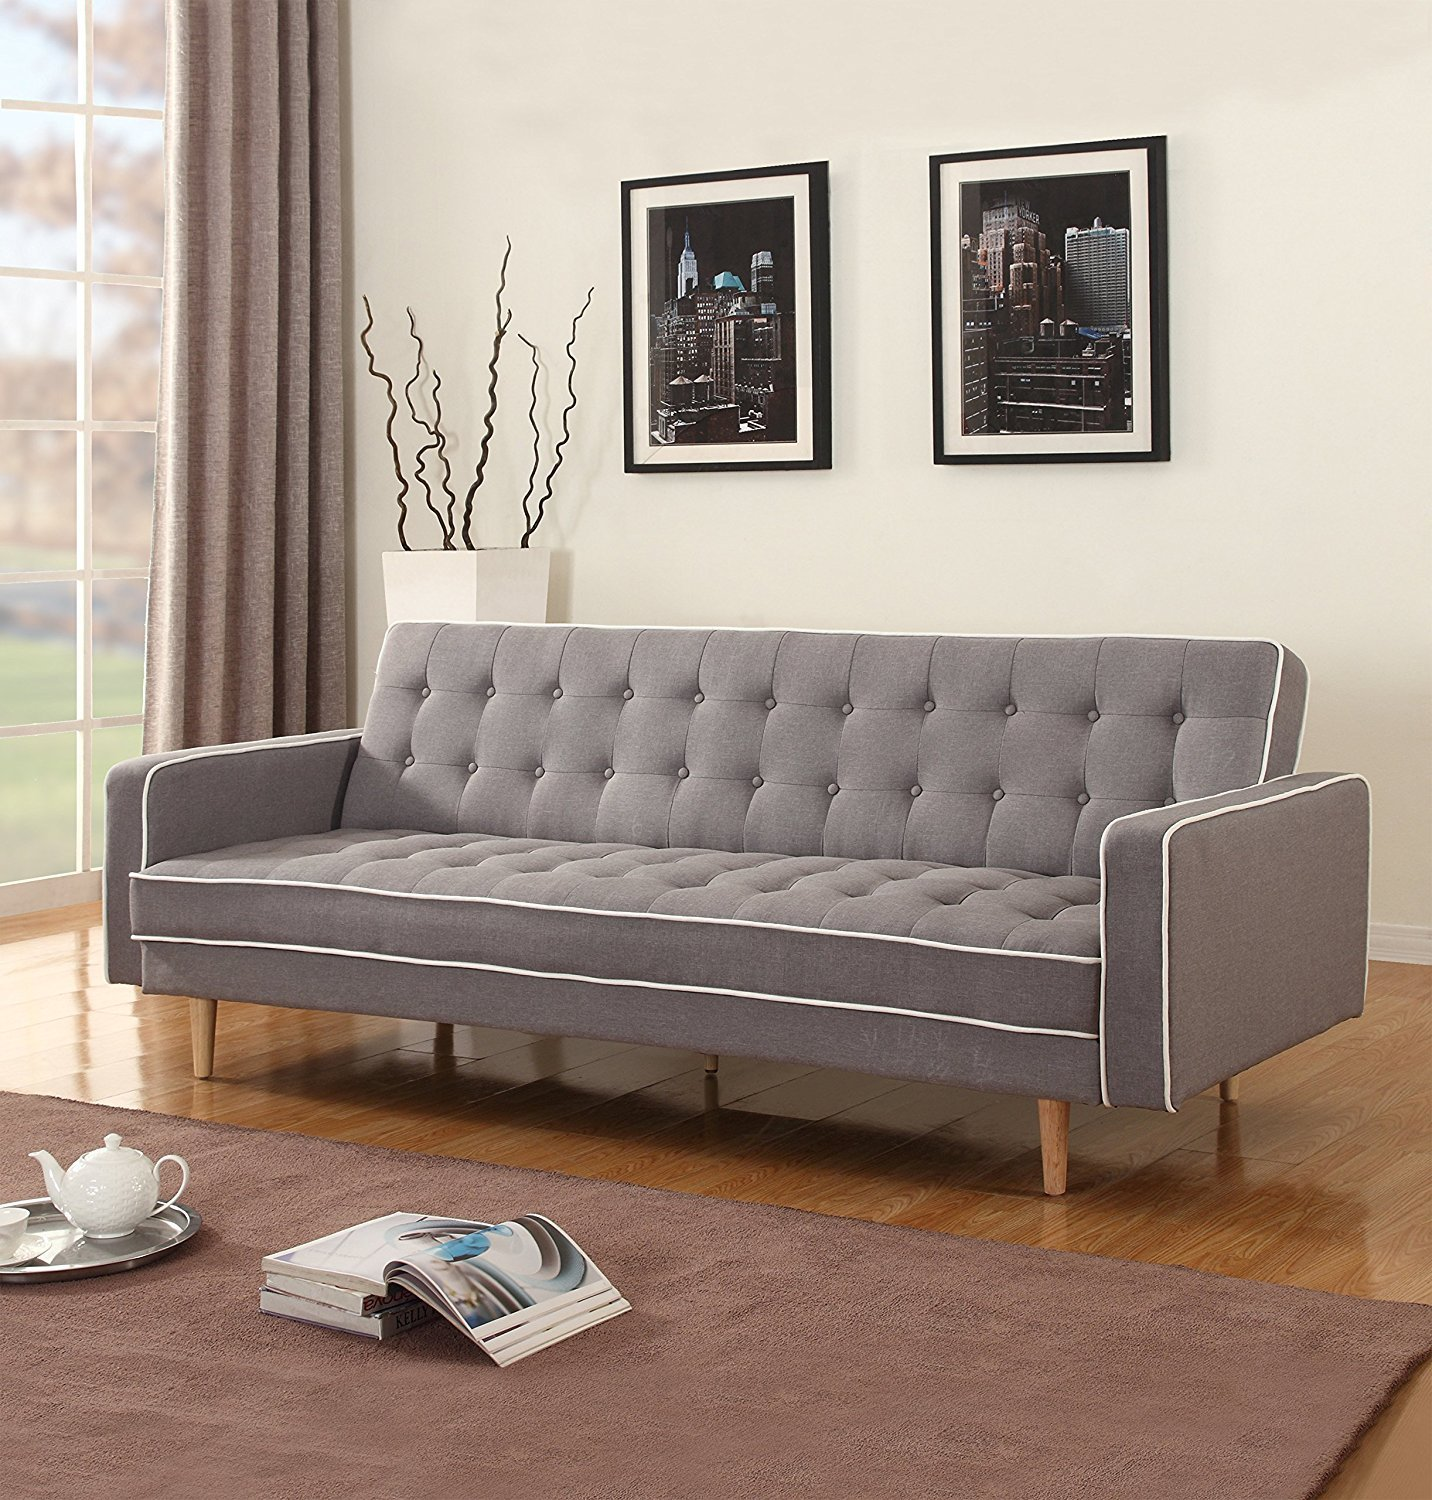 Comfy Sleeper Sofa: Top 10 Best Comfortable Sleeper Sofas In 2019 Review